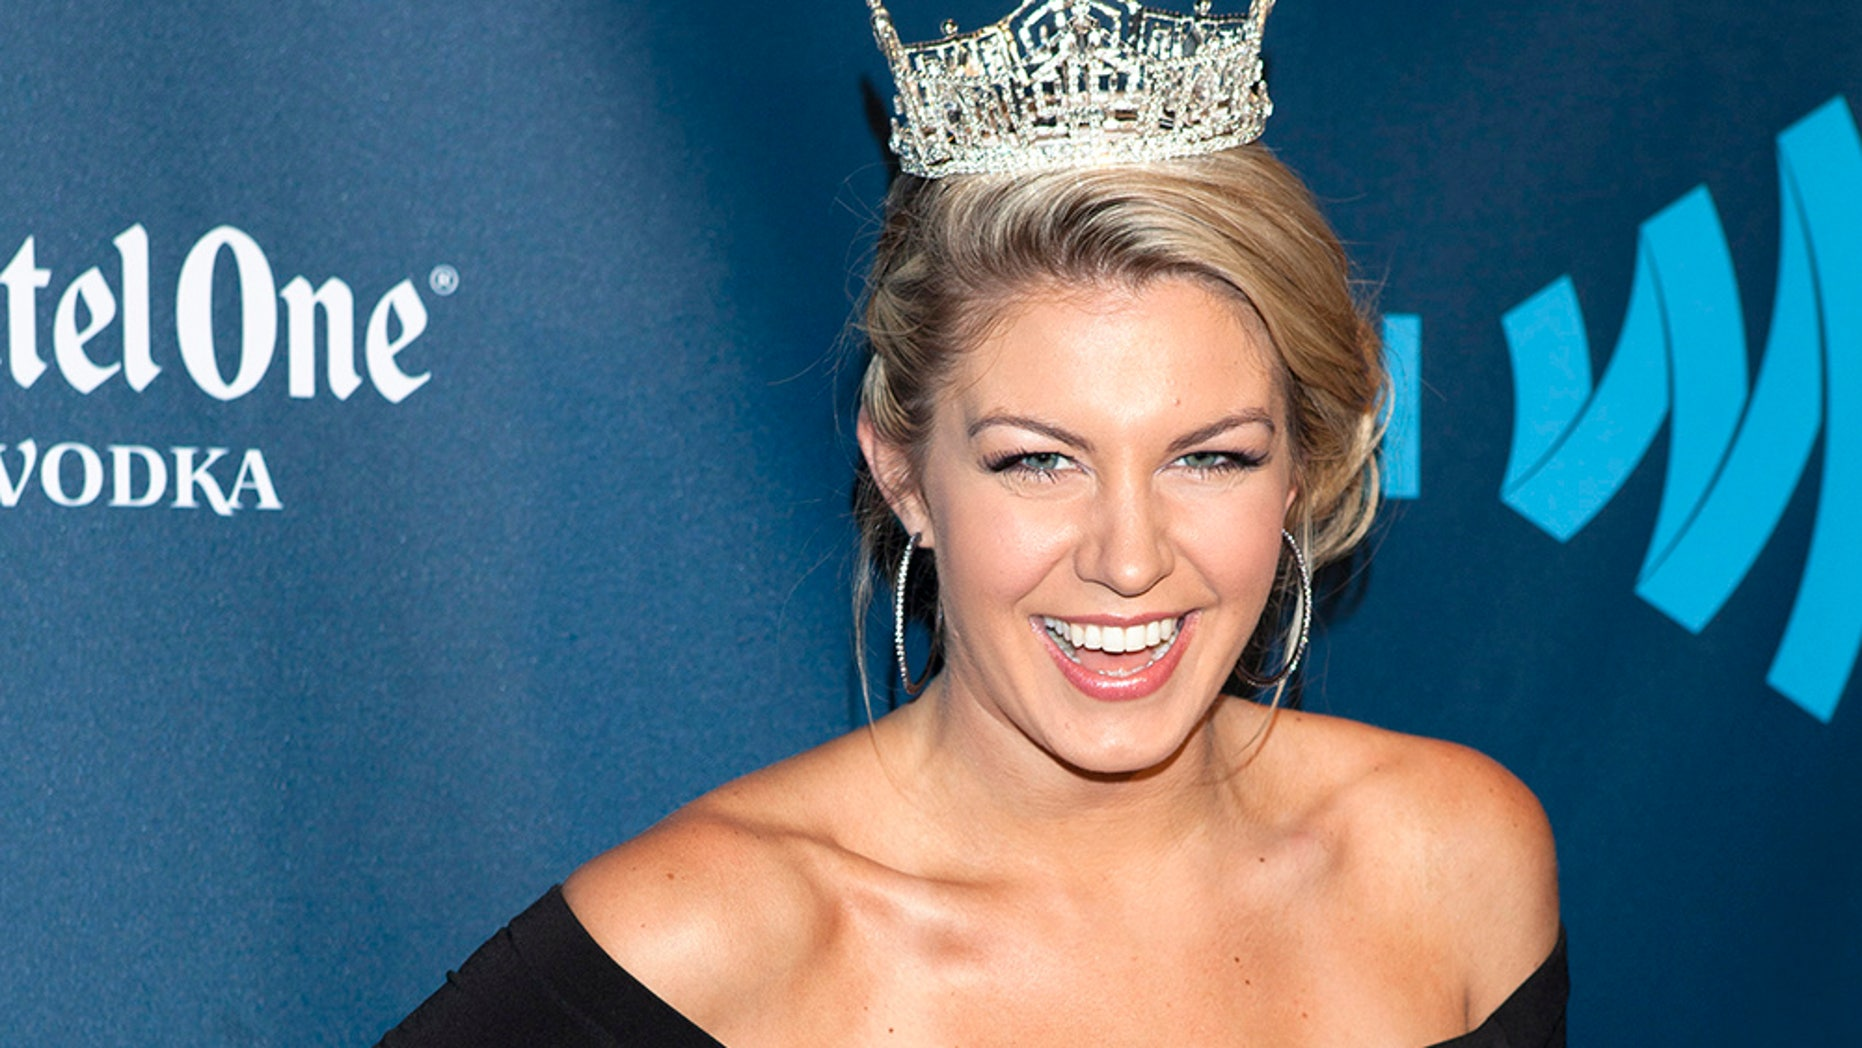 Miss America 2013 Mallory Hagan arrives for the 24th Annual GLAAD Media Awards in New York, March 16, 2013.  REUTERS/Carlo Allegri  (UNITED STATES - Tags: ENTERTAINMENT) - GM1E93H13RH01